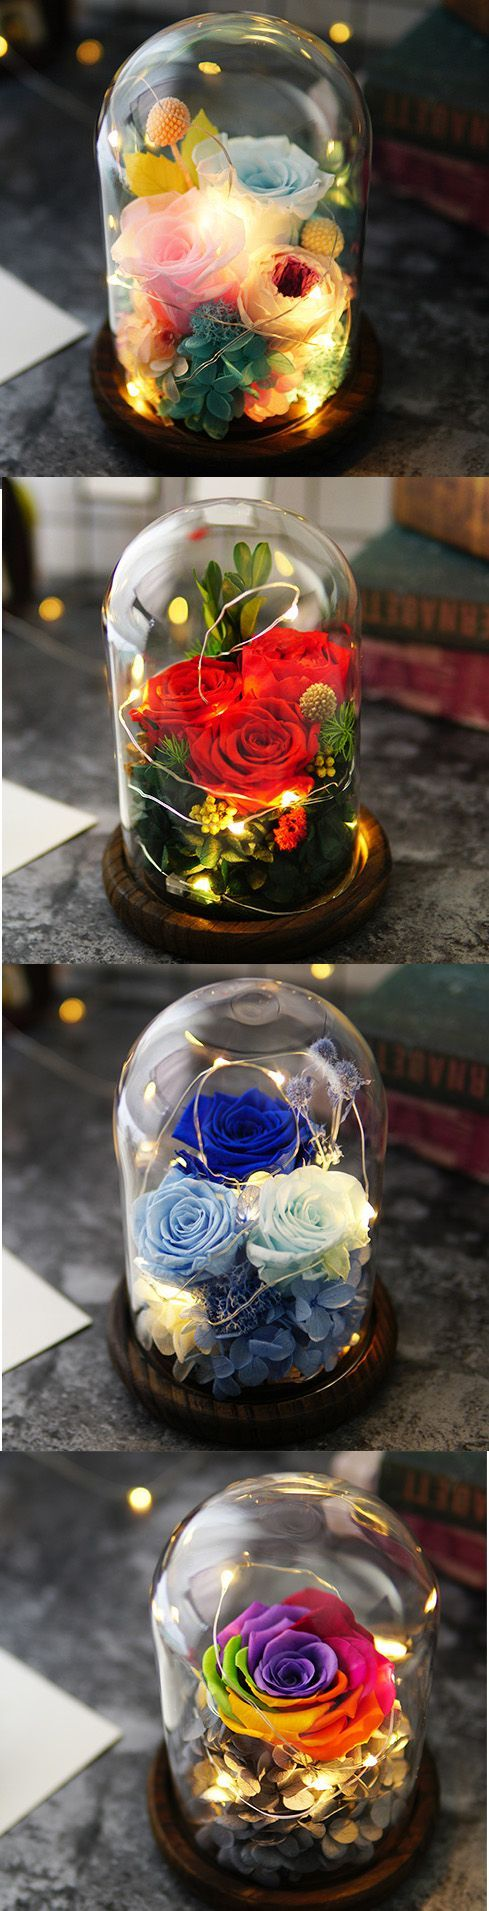 A classy, very sophisticated roses decoration. Perfect for a sophisticated, elegant decor, make the room look very modern and shabby chic. Excellent wedding centerpiece or ring box. Beauty and the Beast theme Perfect Birthday, Valentine, anniversary, Christmas gift